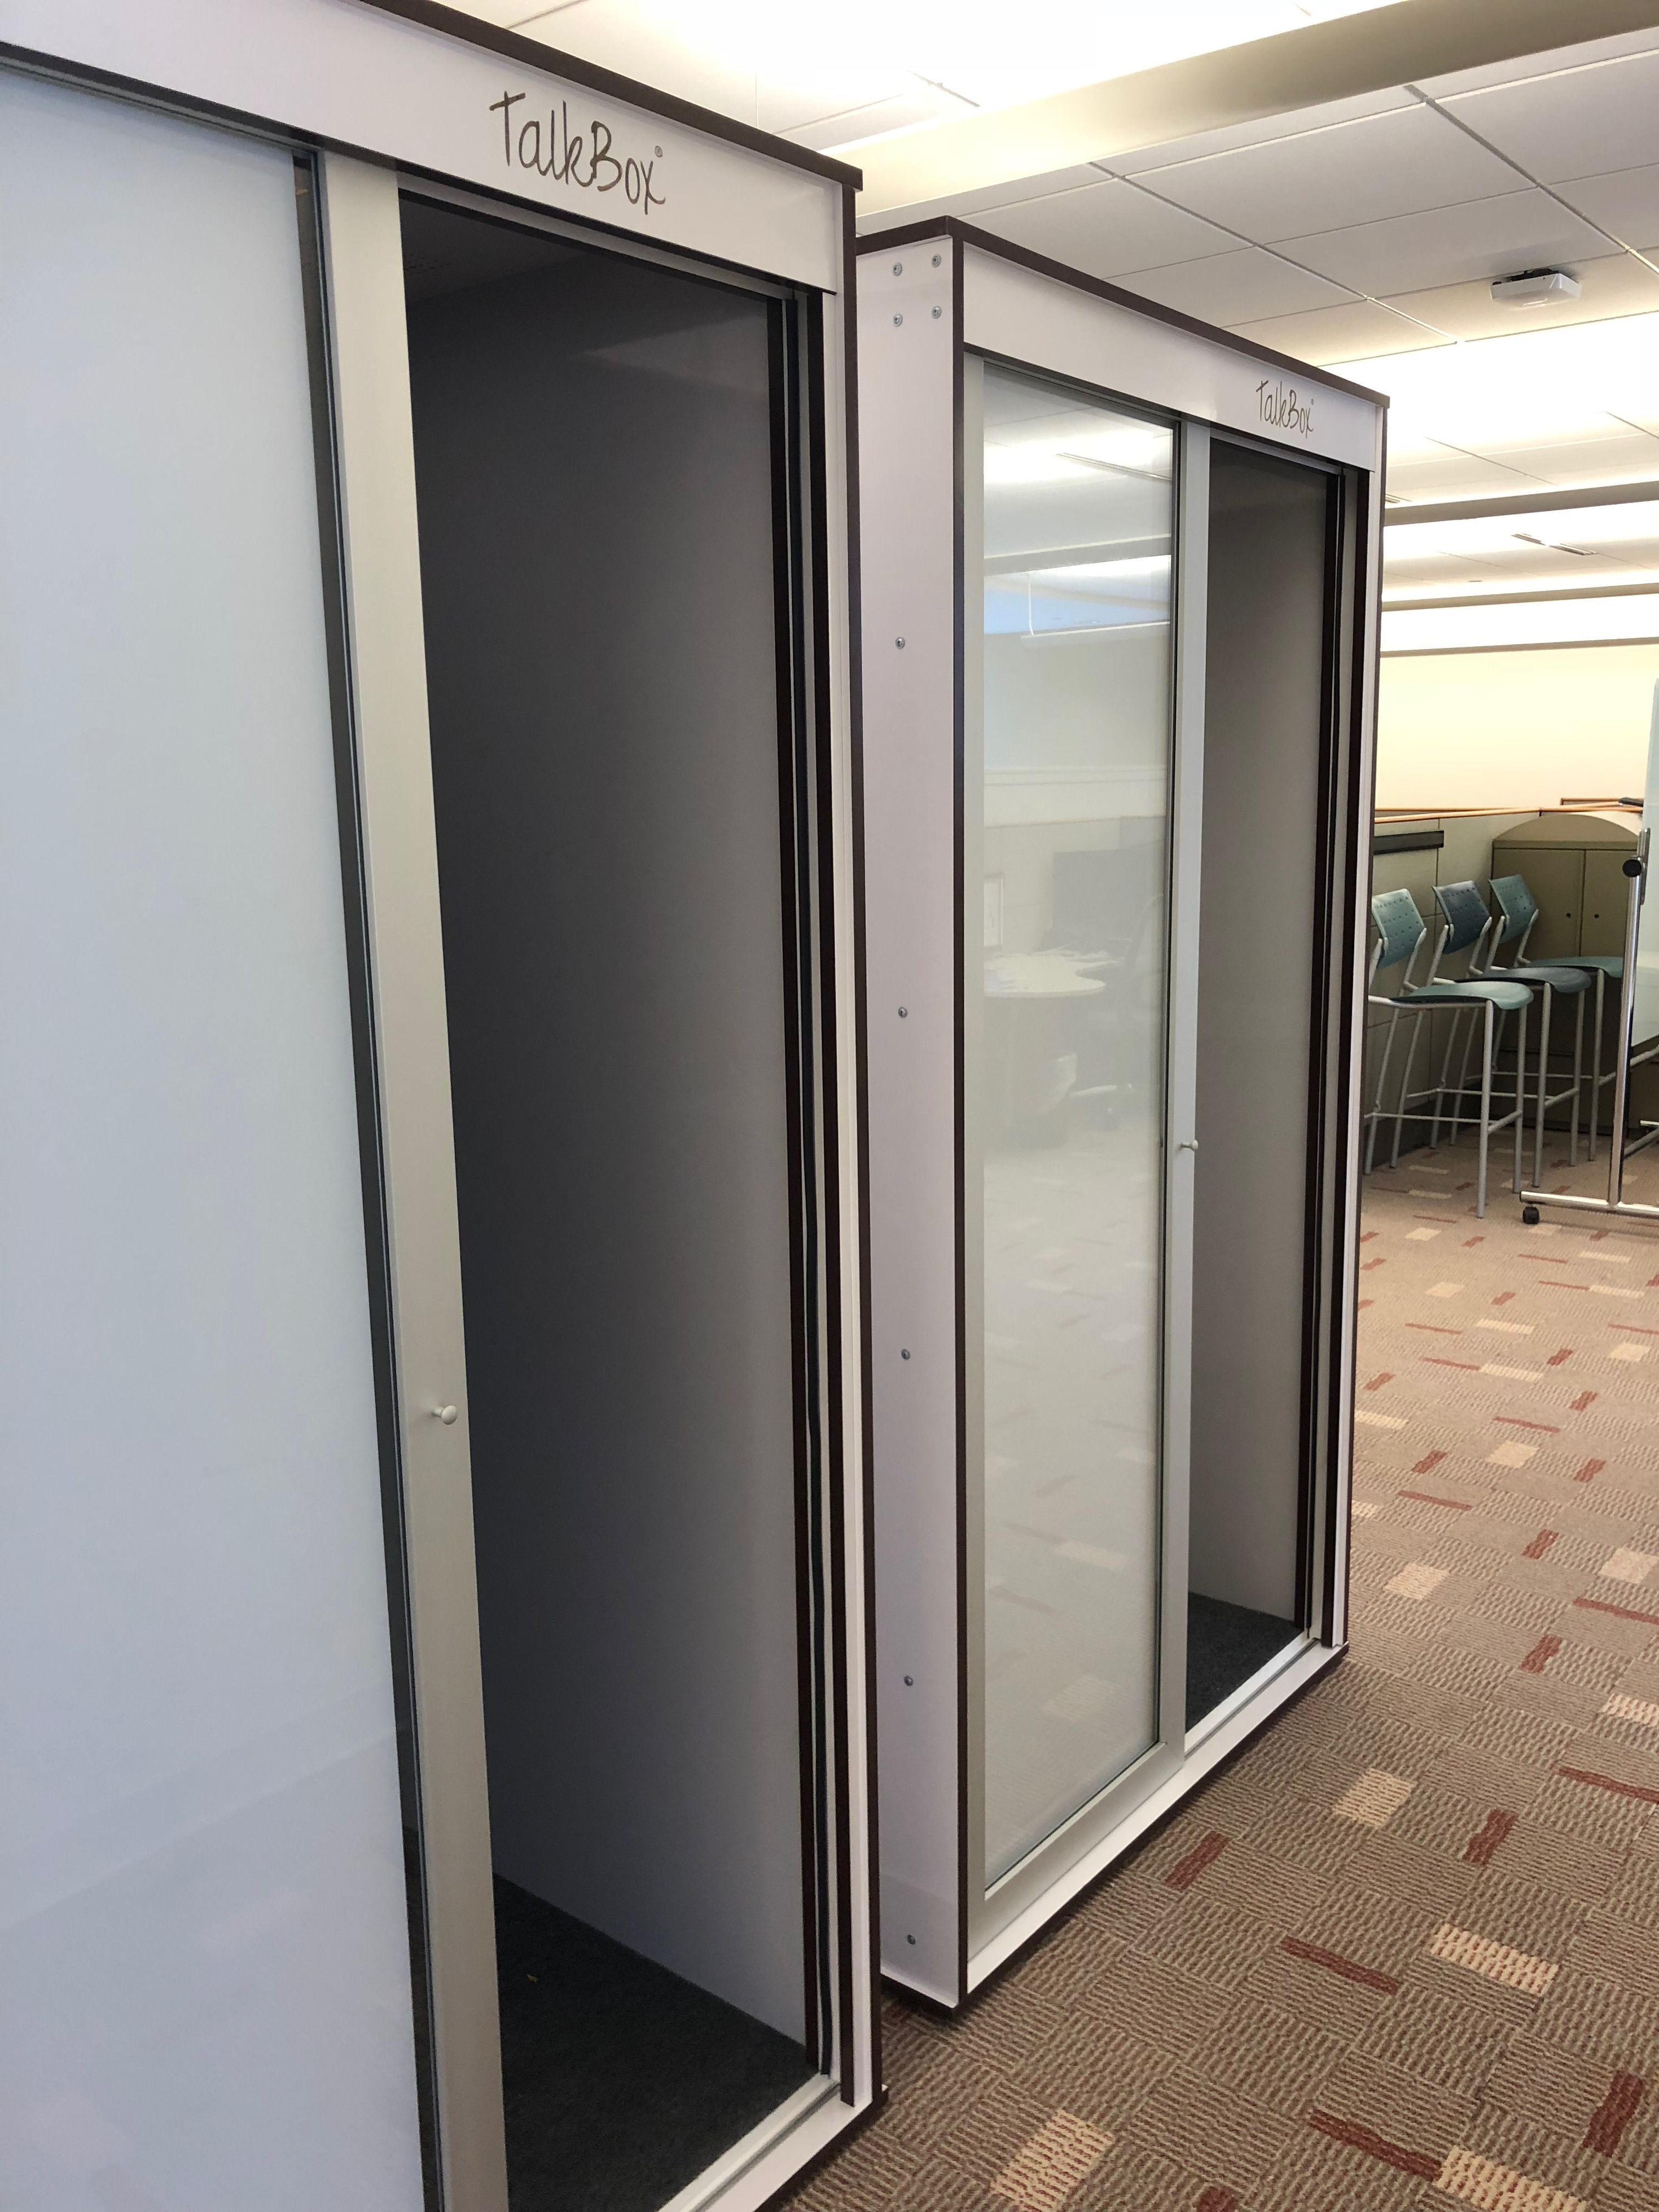 Two White Single Premium Talkbox Booths At Zenuity Office Privacy Open Office Booth